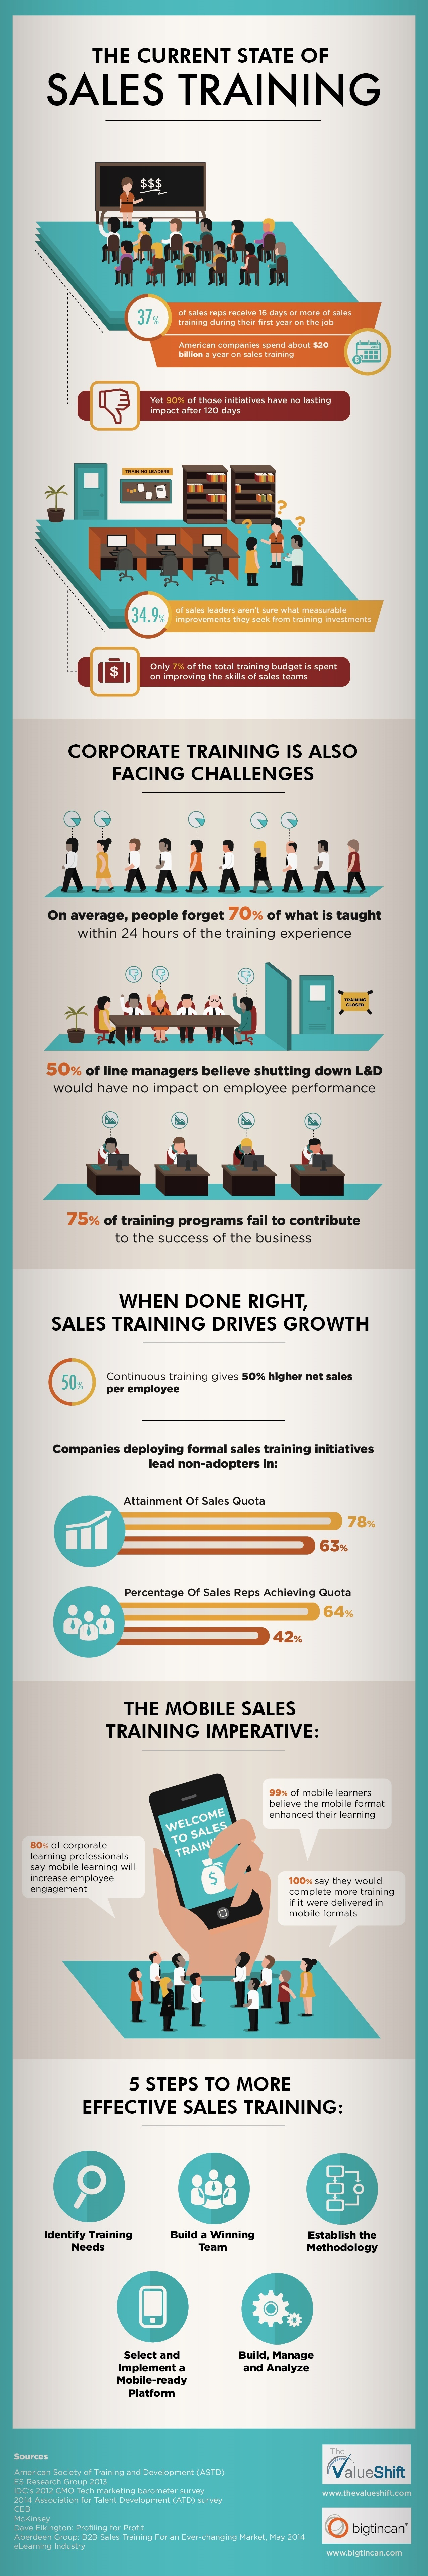 The Current State of Sales Training Infographic